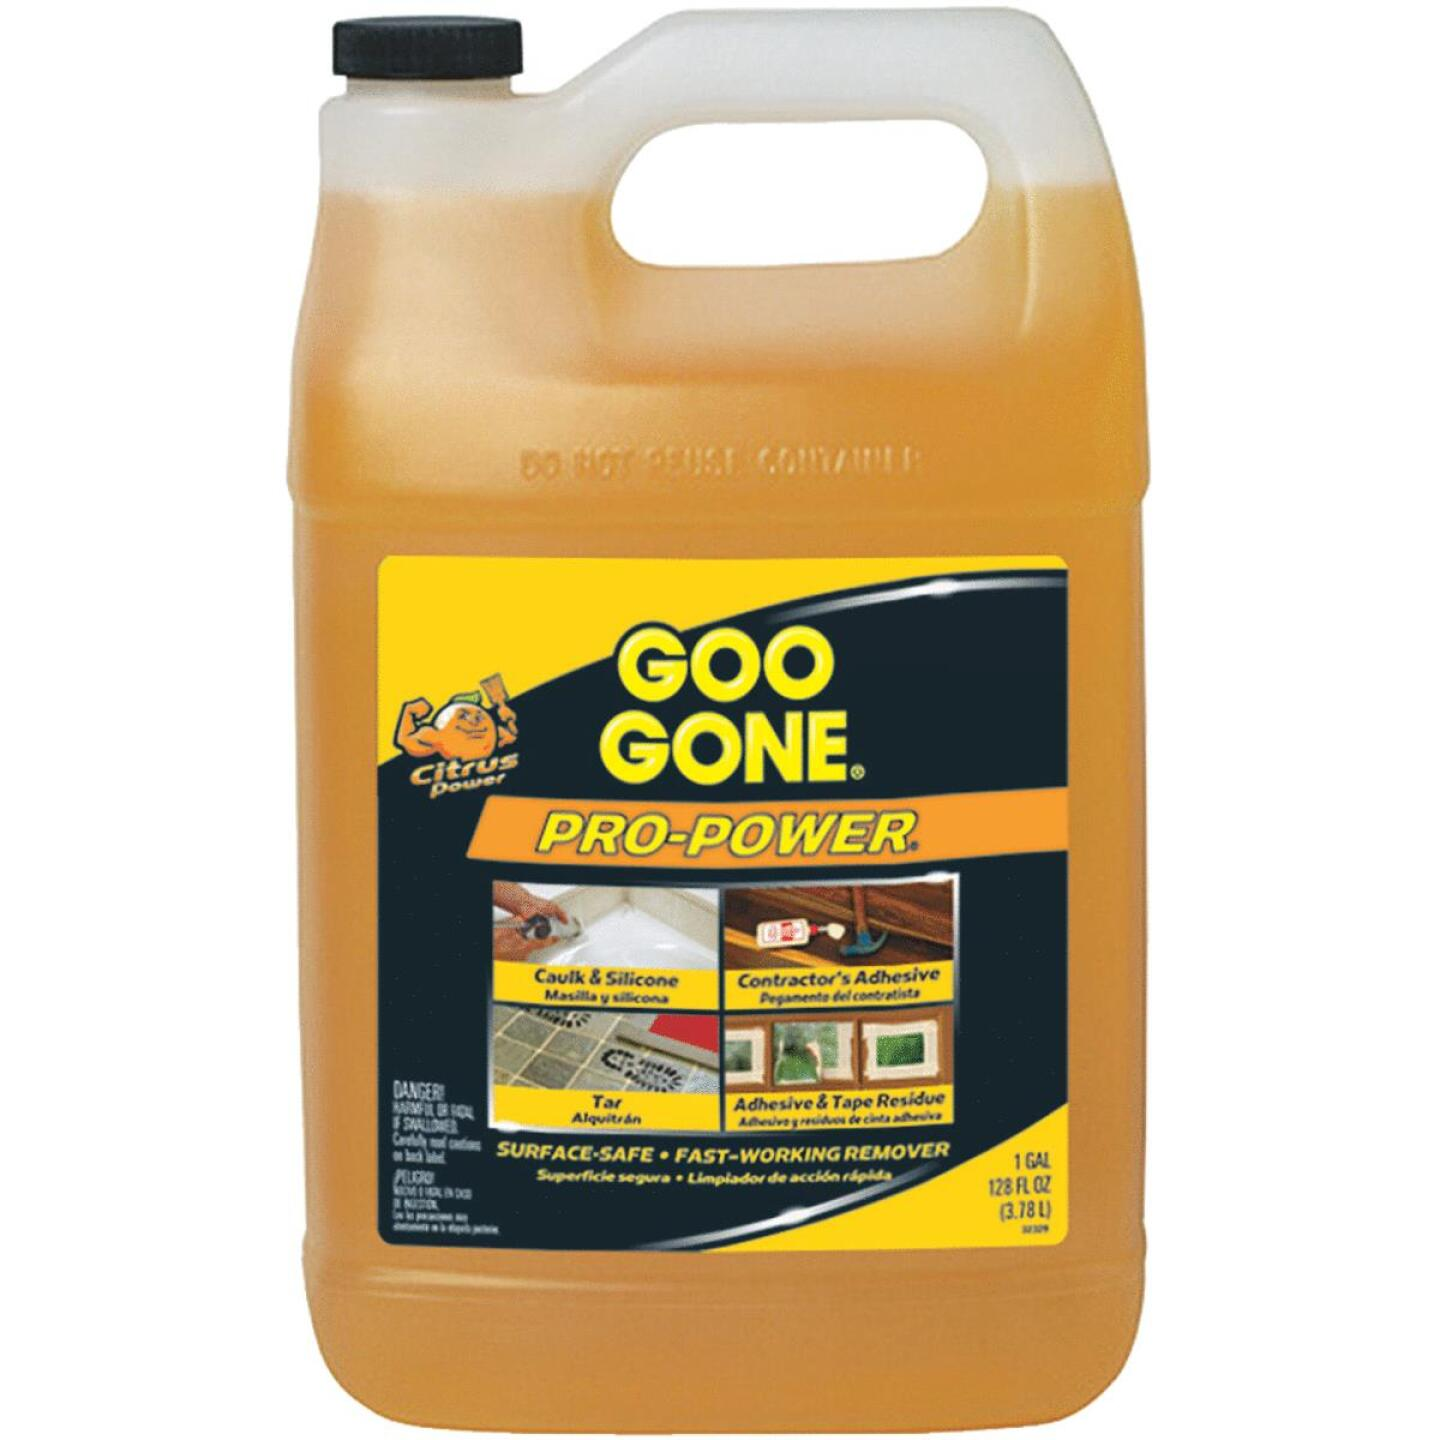 Goo Gone 1 Gal. Pro-Power Adhesive Remover Image 224